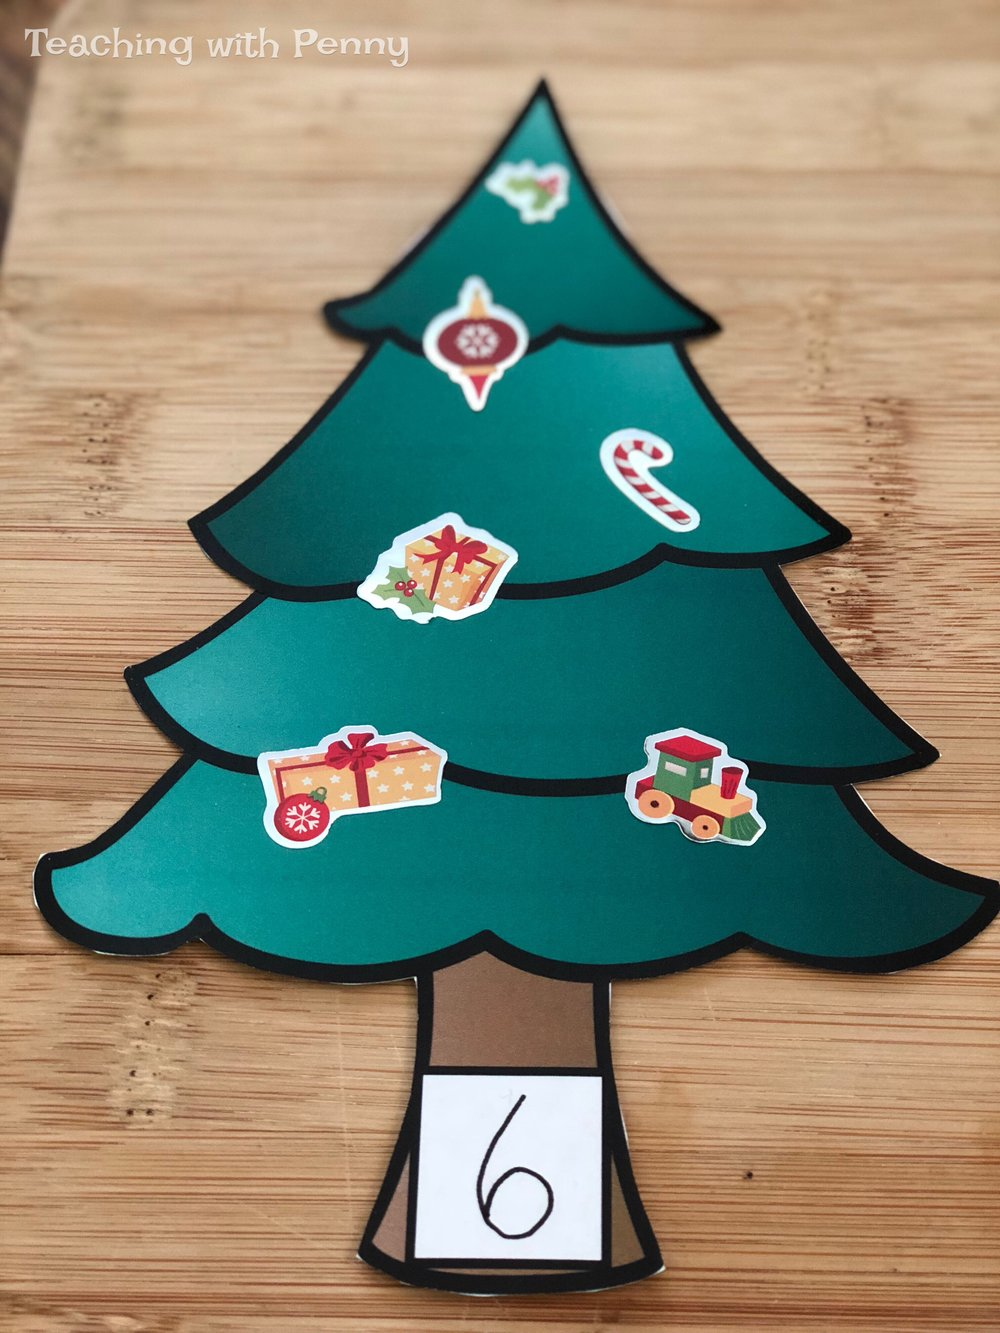 I included these free tree templates that you can use for counting, just print as many as you need and add the numbers. I used stickers because I had students hand these in and I used them to decorate the room. To save on printing just laminate them and have students place non-sticking objects on top. If you want to use this idea another way you could also cut trees out of construction paper.